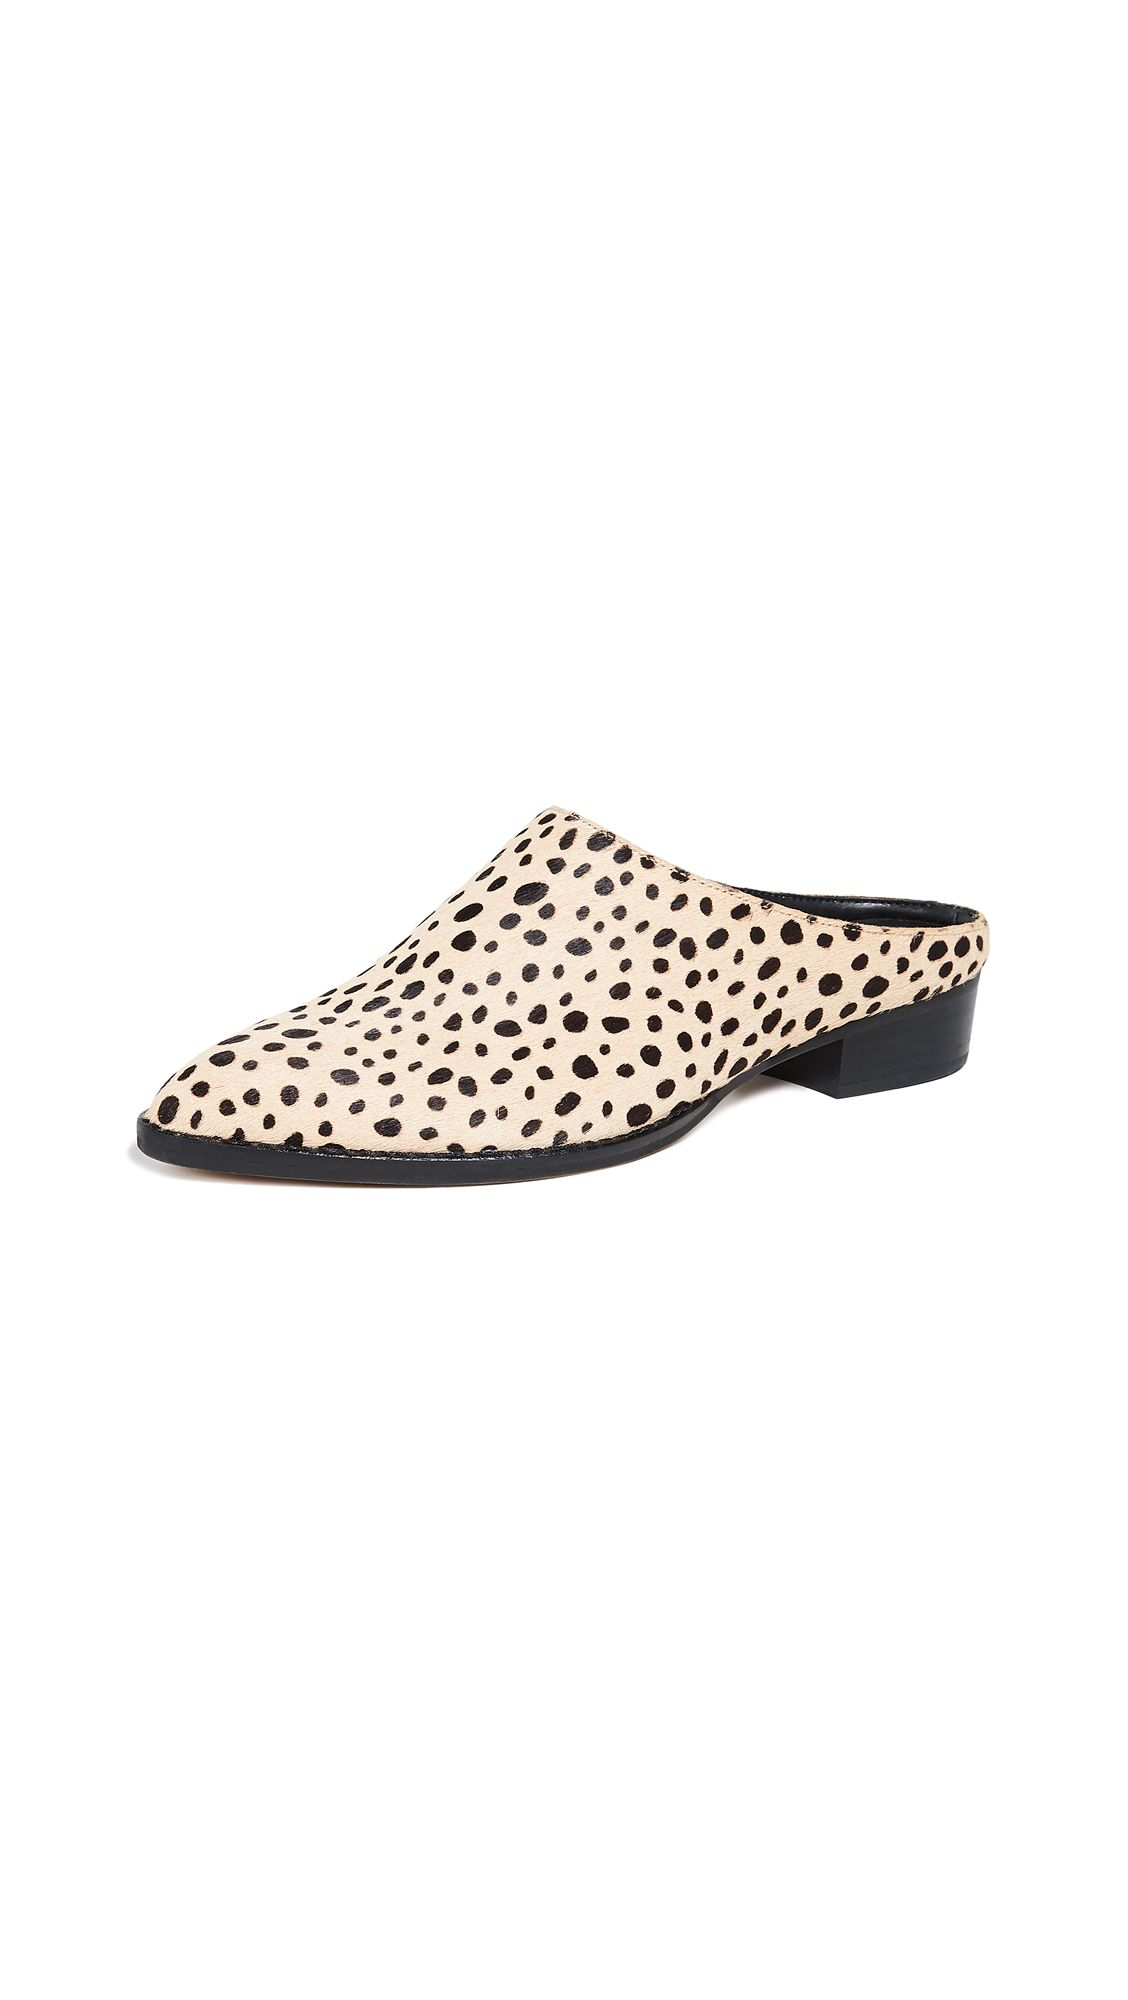 3a939aae028 Aven Point Toe Mules